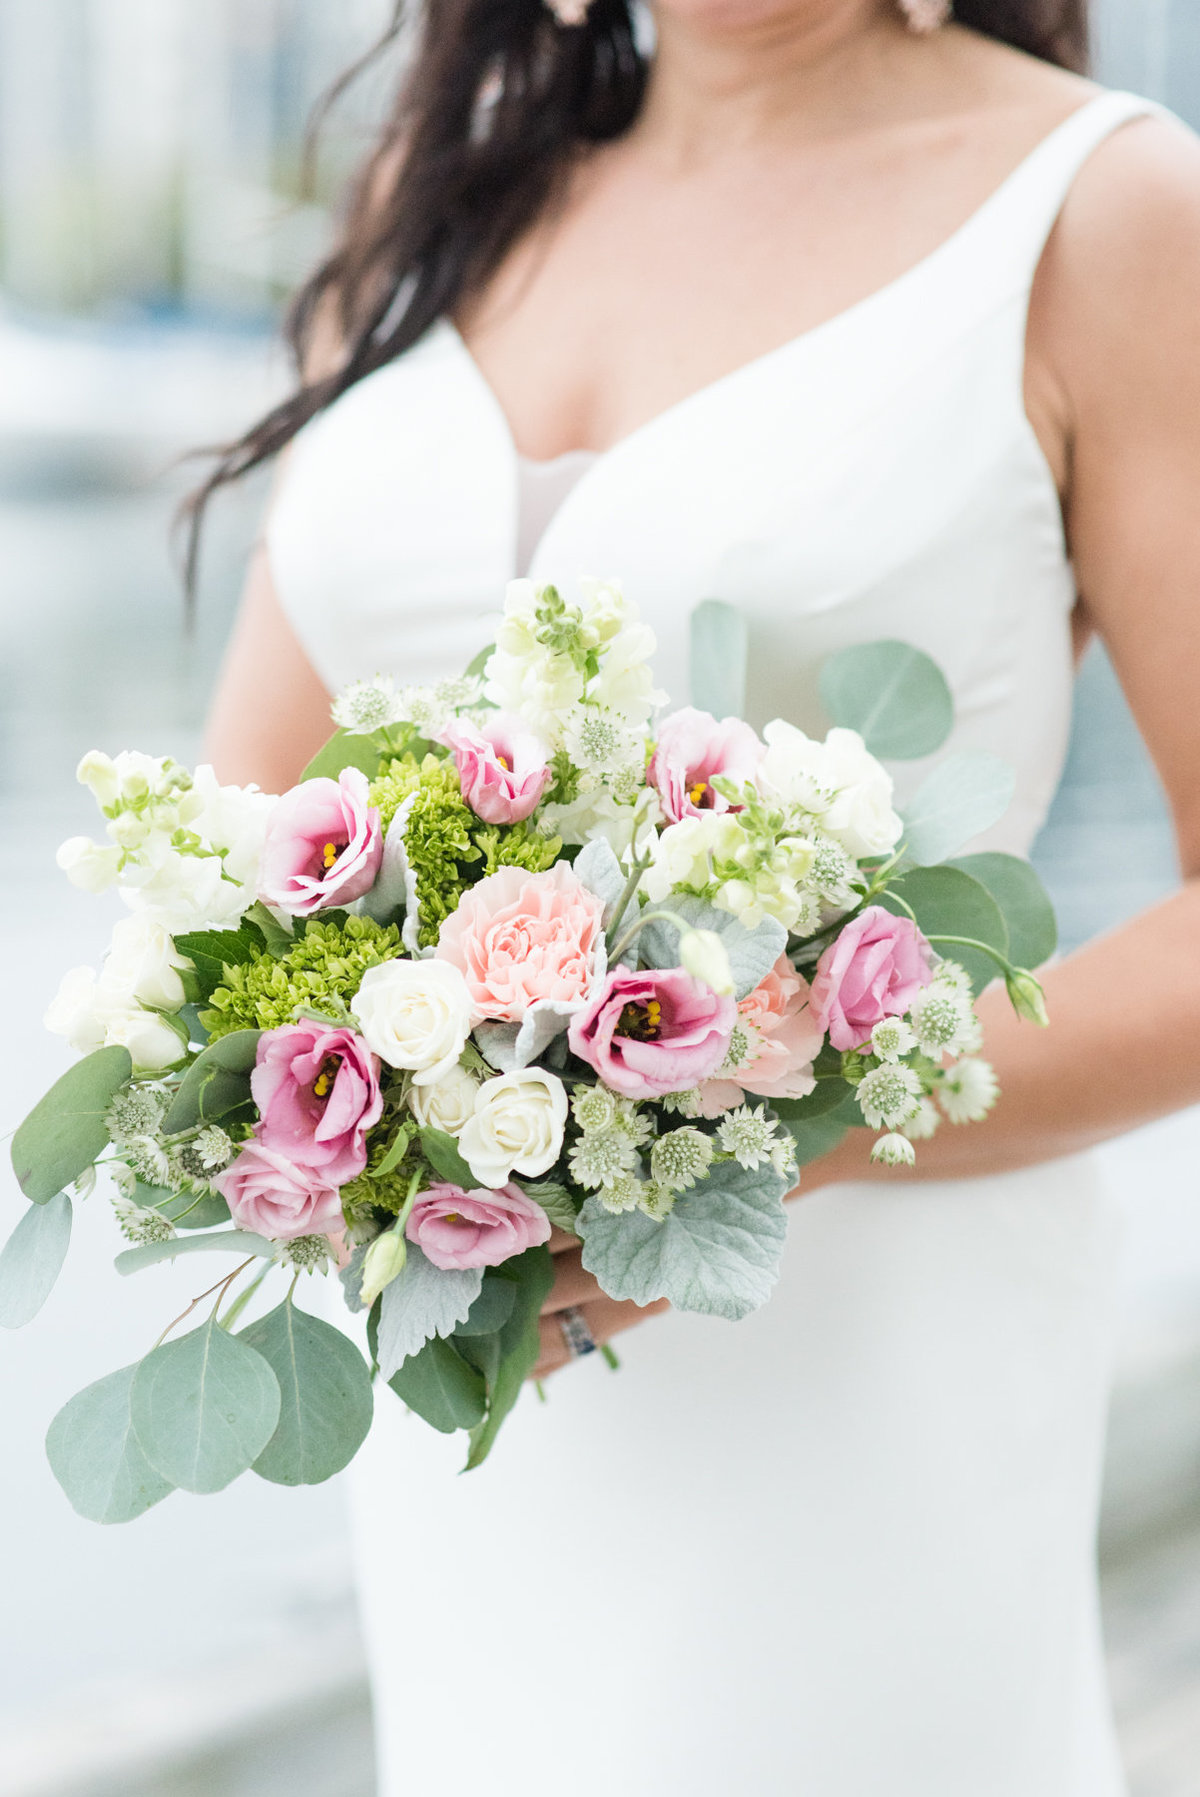 A beautiful lisianthus and carnation bouquet from Thuja Floral Design